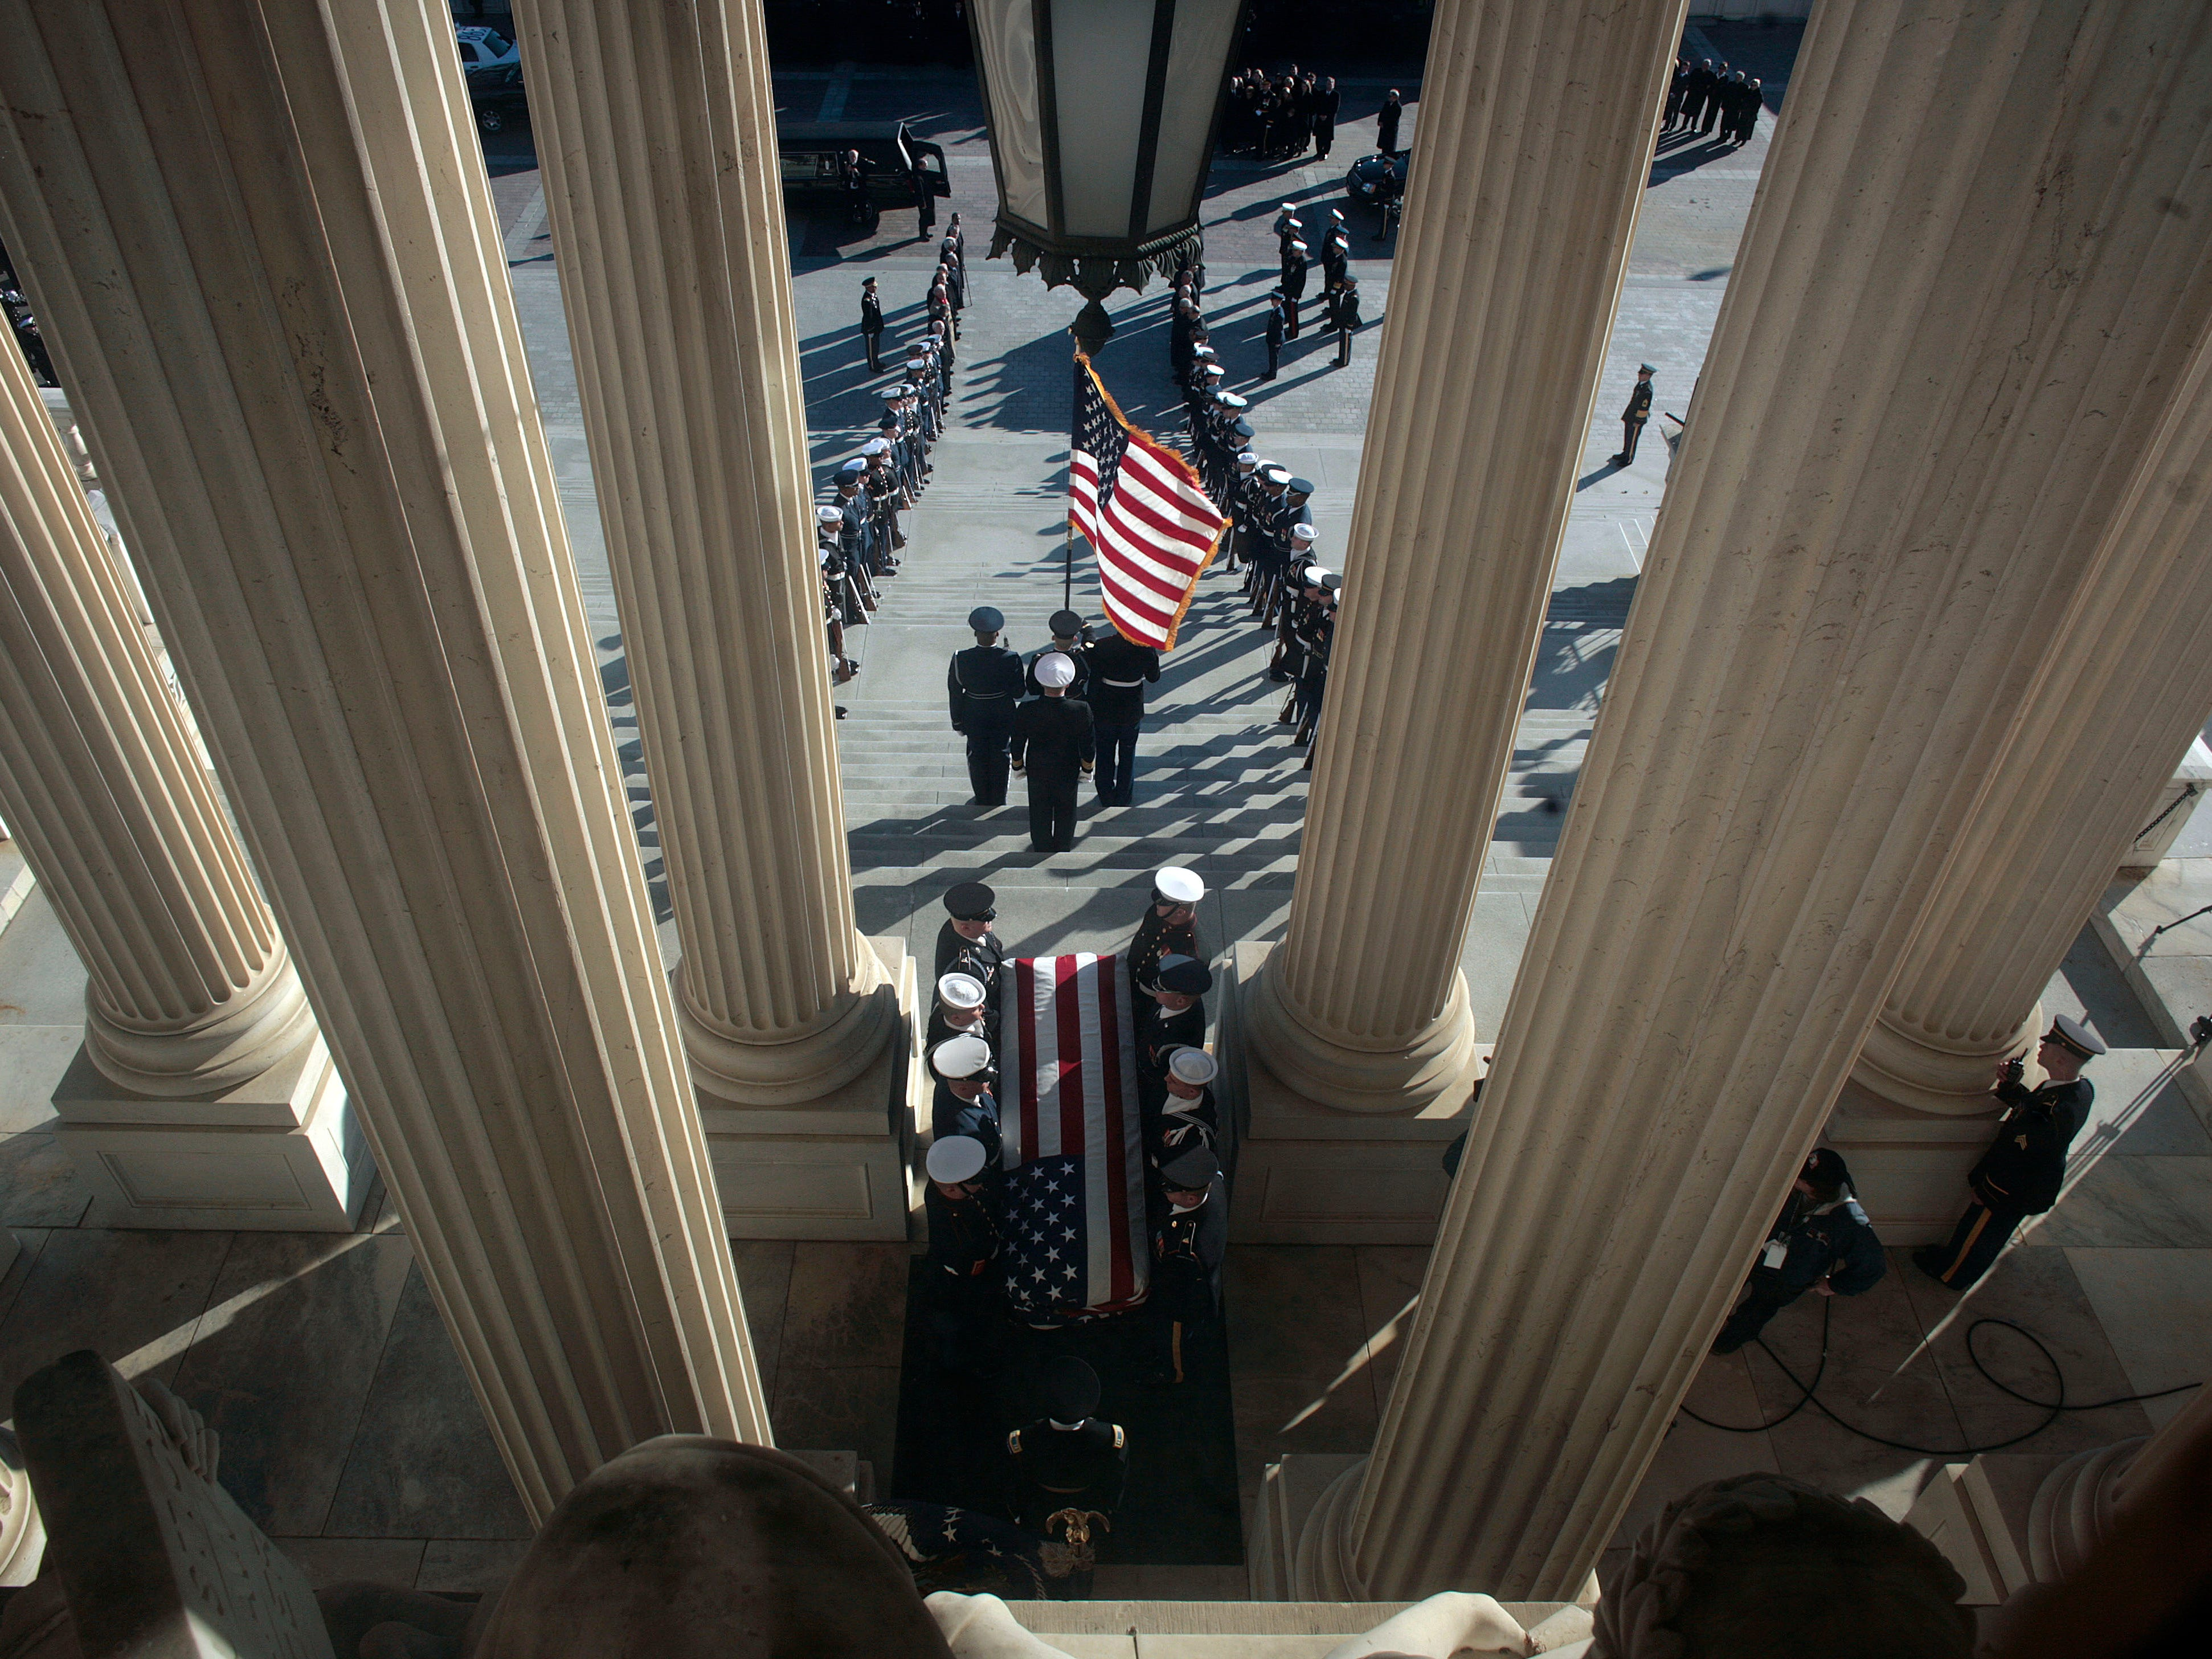 Former President Gerald Ford's casket is carried from the U.S. Capitol en route to a funeral at the Washington National Cathedral in Washington, Tuesday, Jan. 2, 2007.